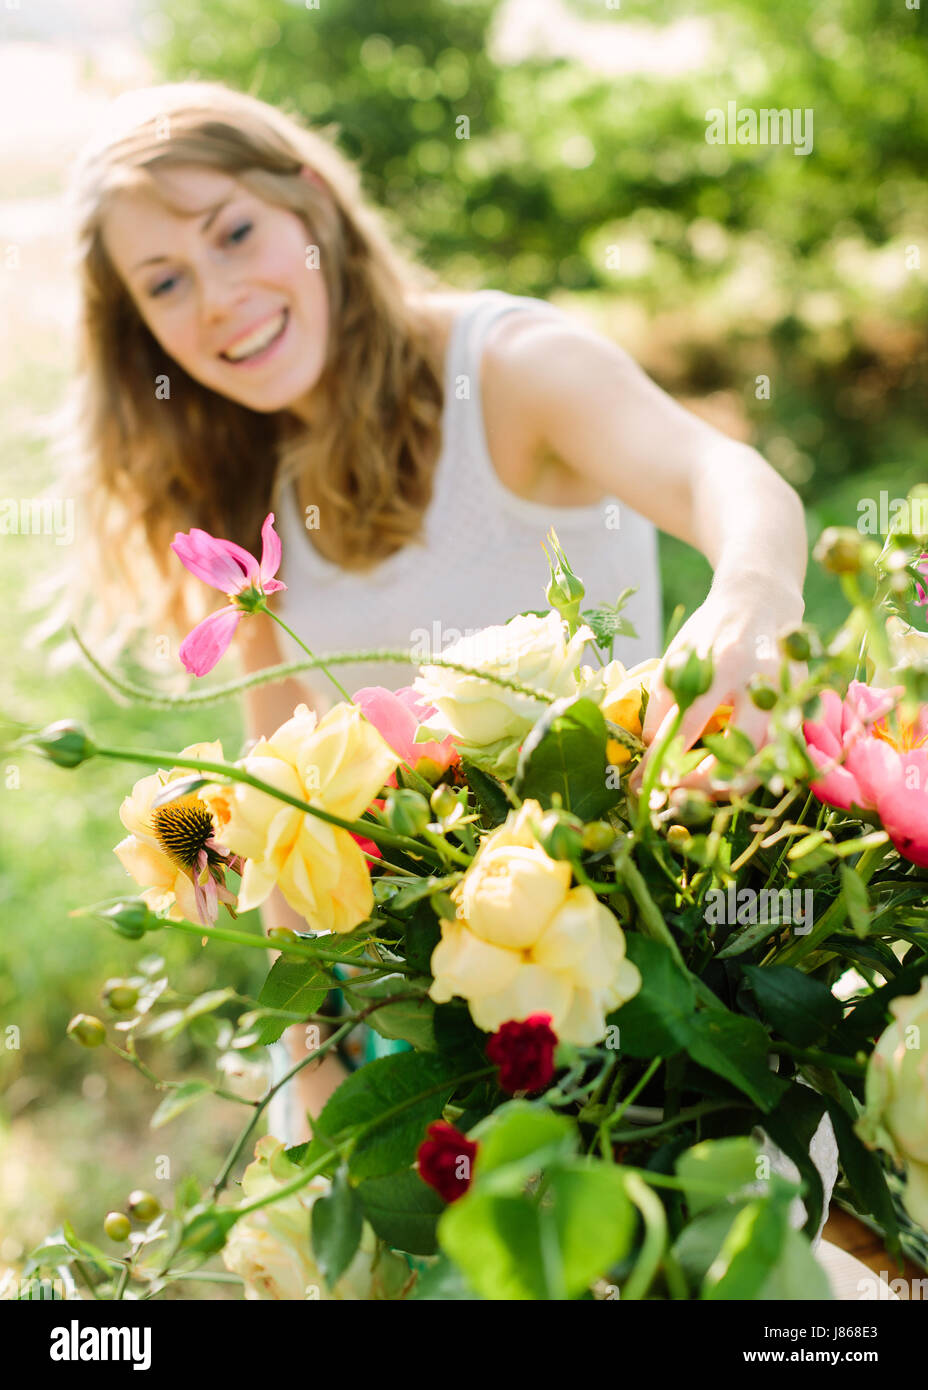 wedding, decoration, floral design, applied arts concept - in foreground beautiful bouquet composed of yellow roses, - Stock Image